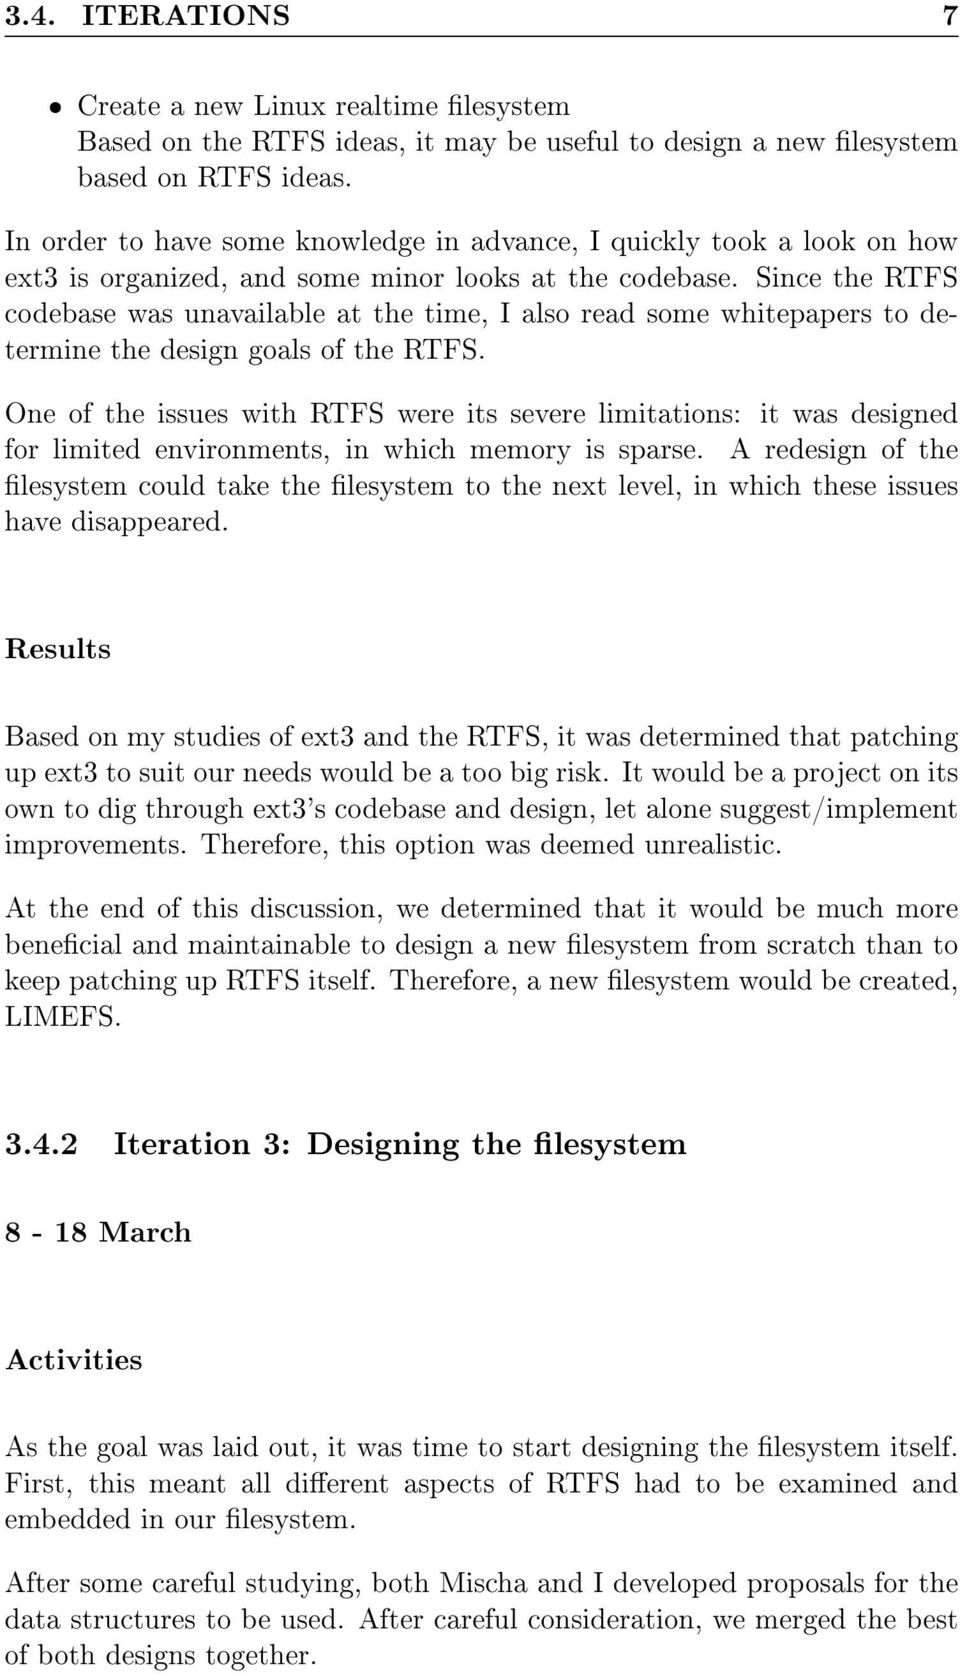 Since the RTFS codebase was unavailable at the time, I also read some whitepapers to determine the design goals of the RTFS.